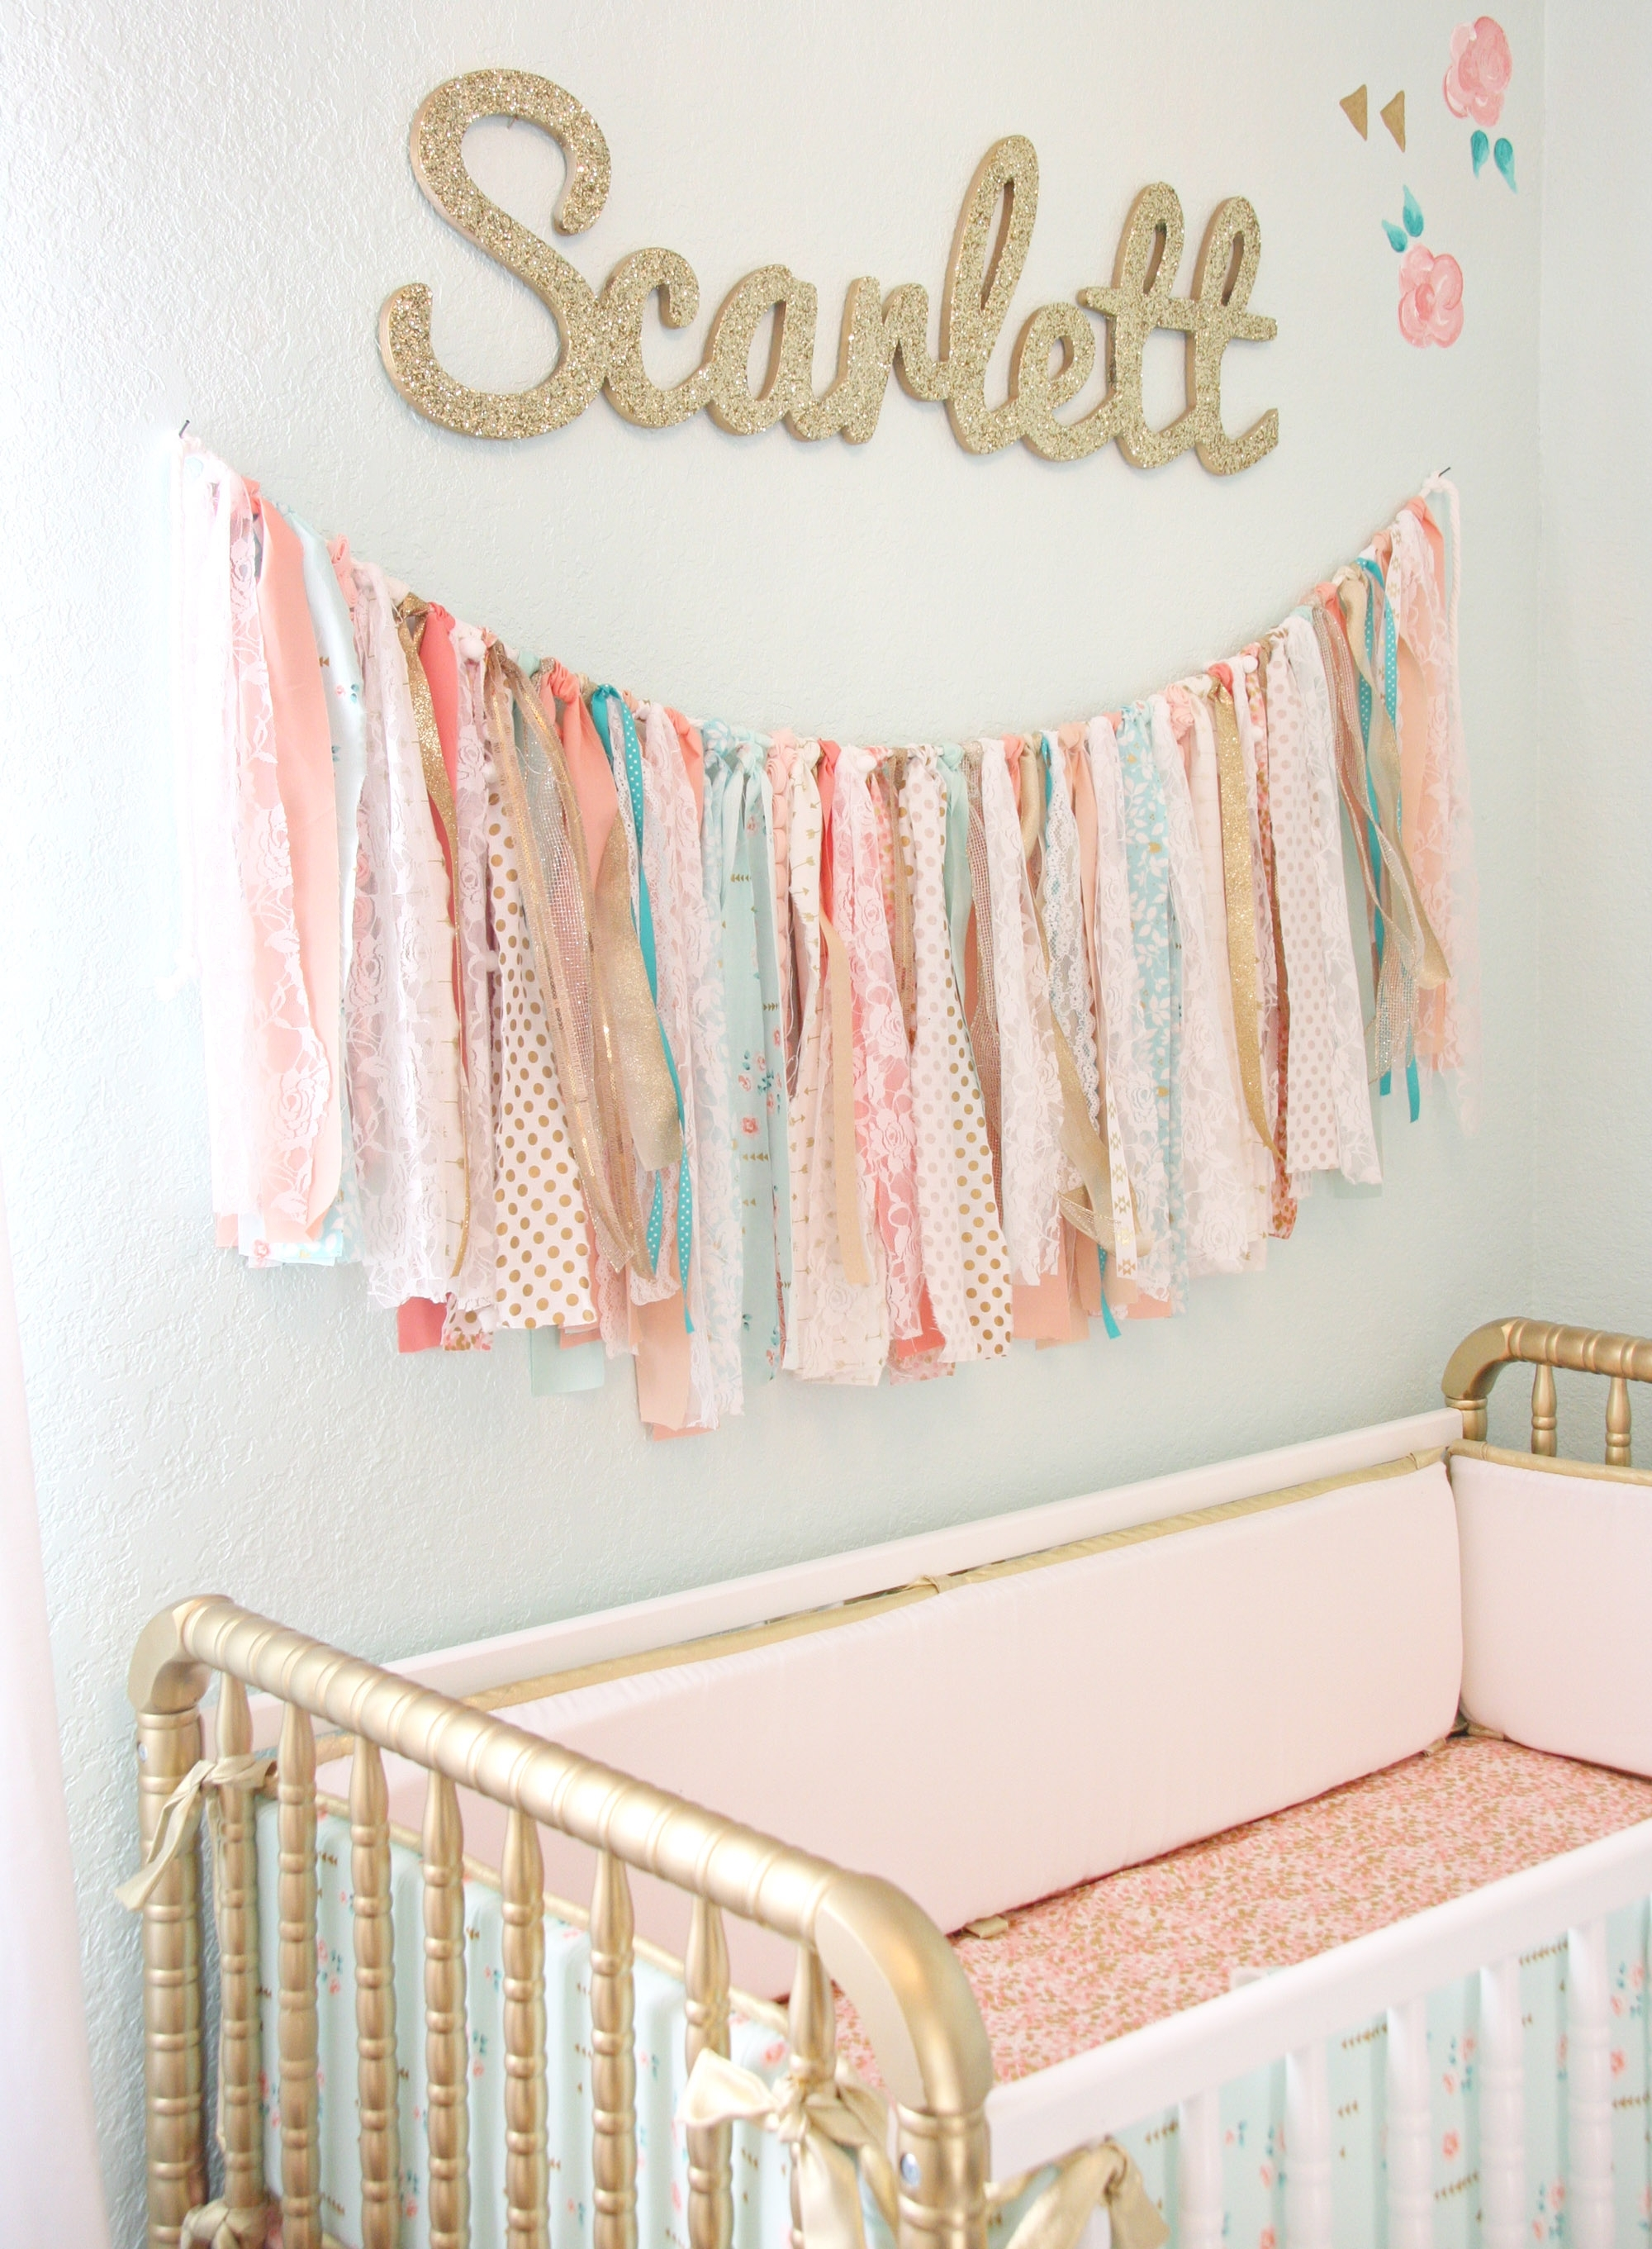 Coral, Mint, And Gold Vintage Style: Scarlett's Nursery Reveal Regarding Most Current Fabric Wall Art For Nursery (Gallery 12 of 15)